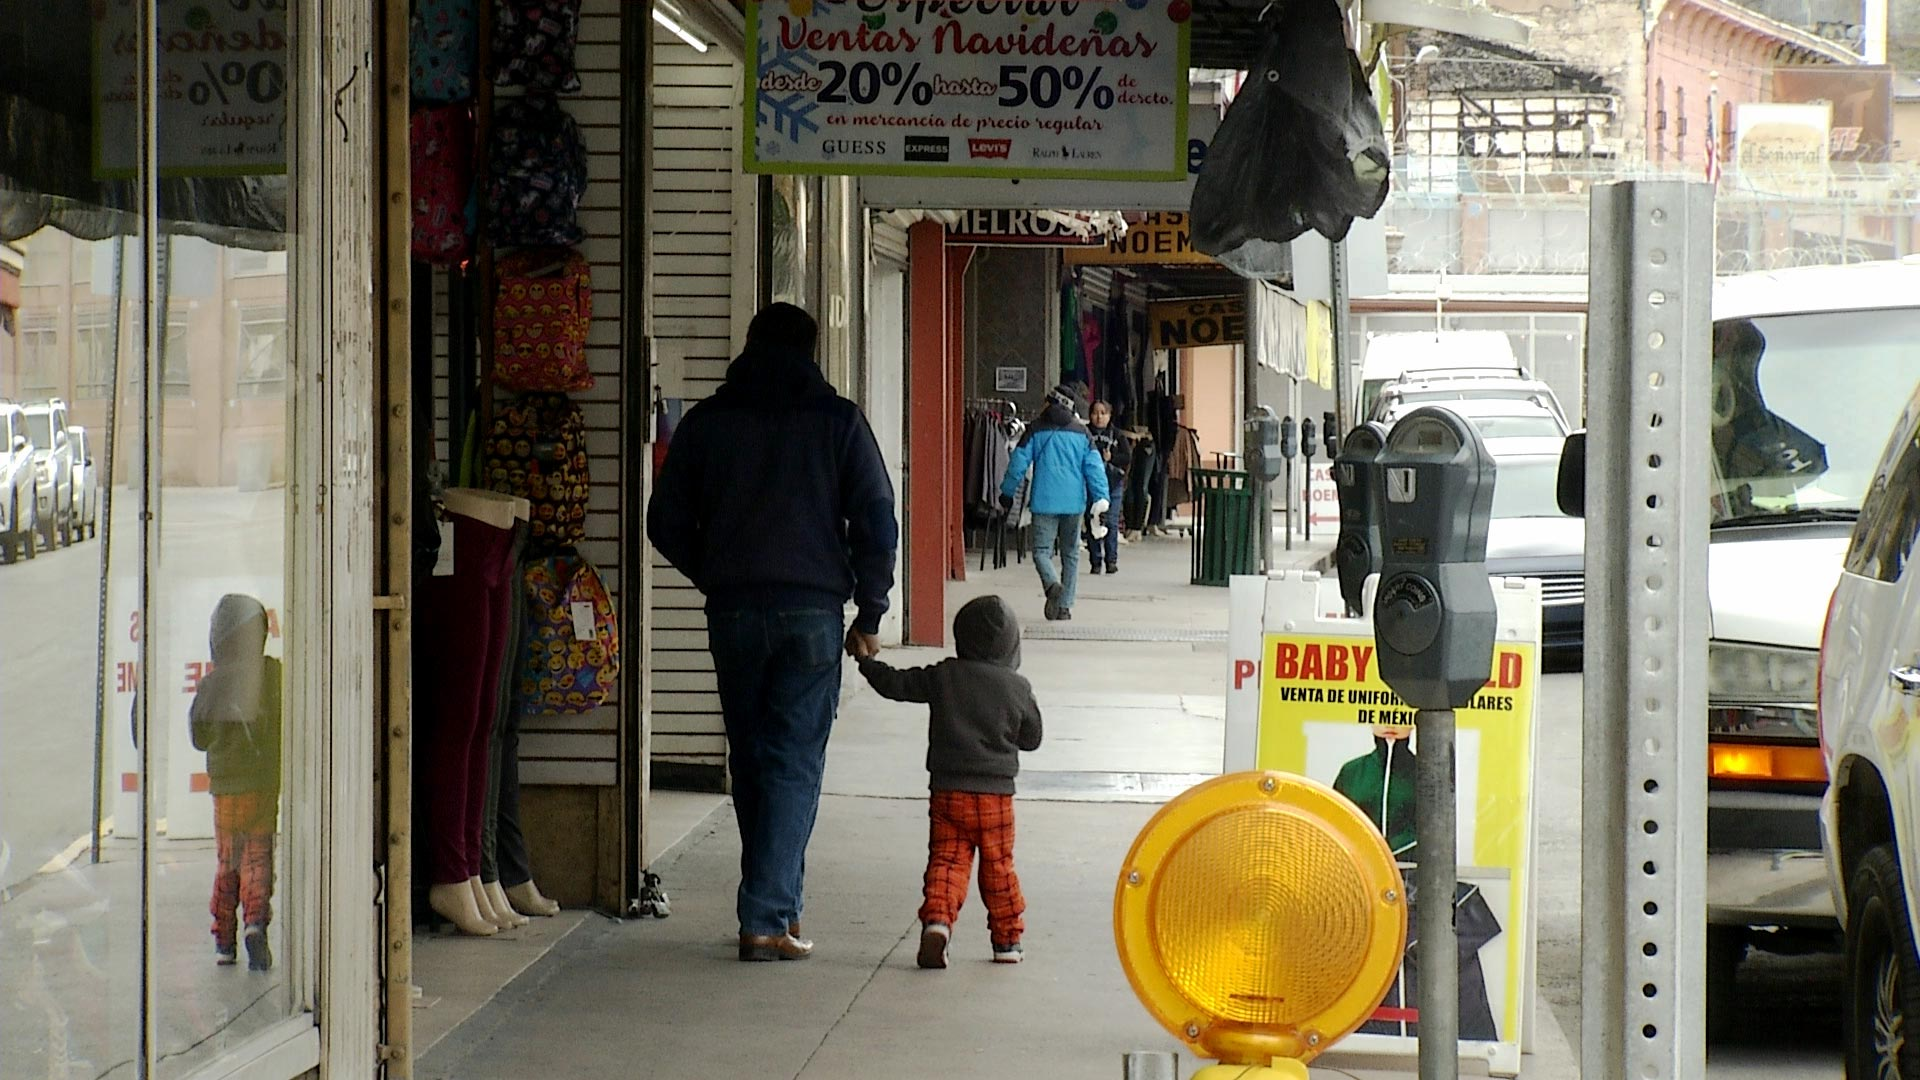 A man and child walk along storefronts in Nogales, Arizona on February 18, 2019.